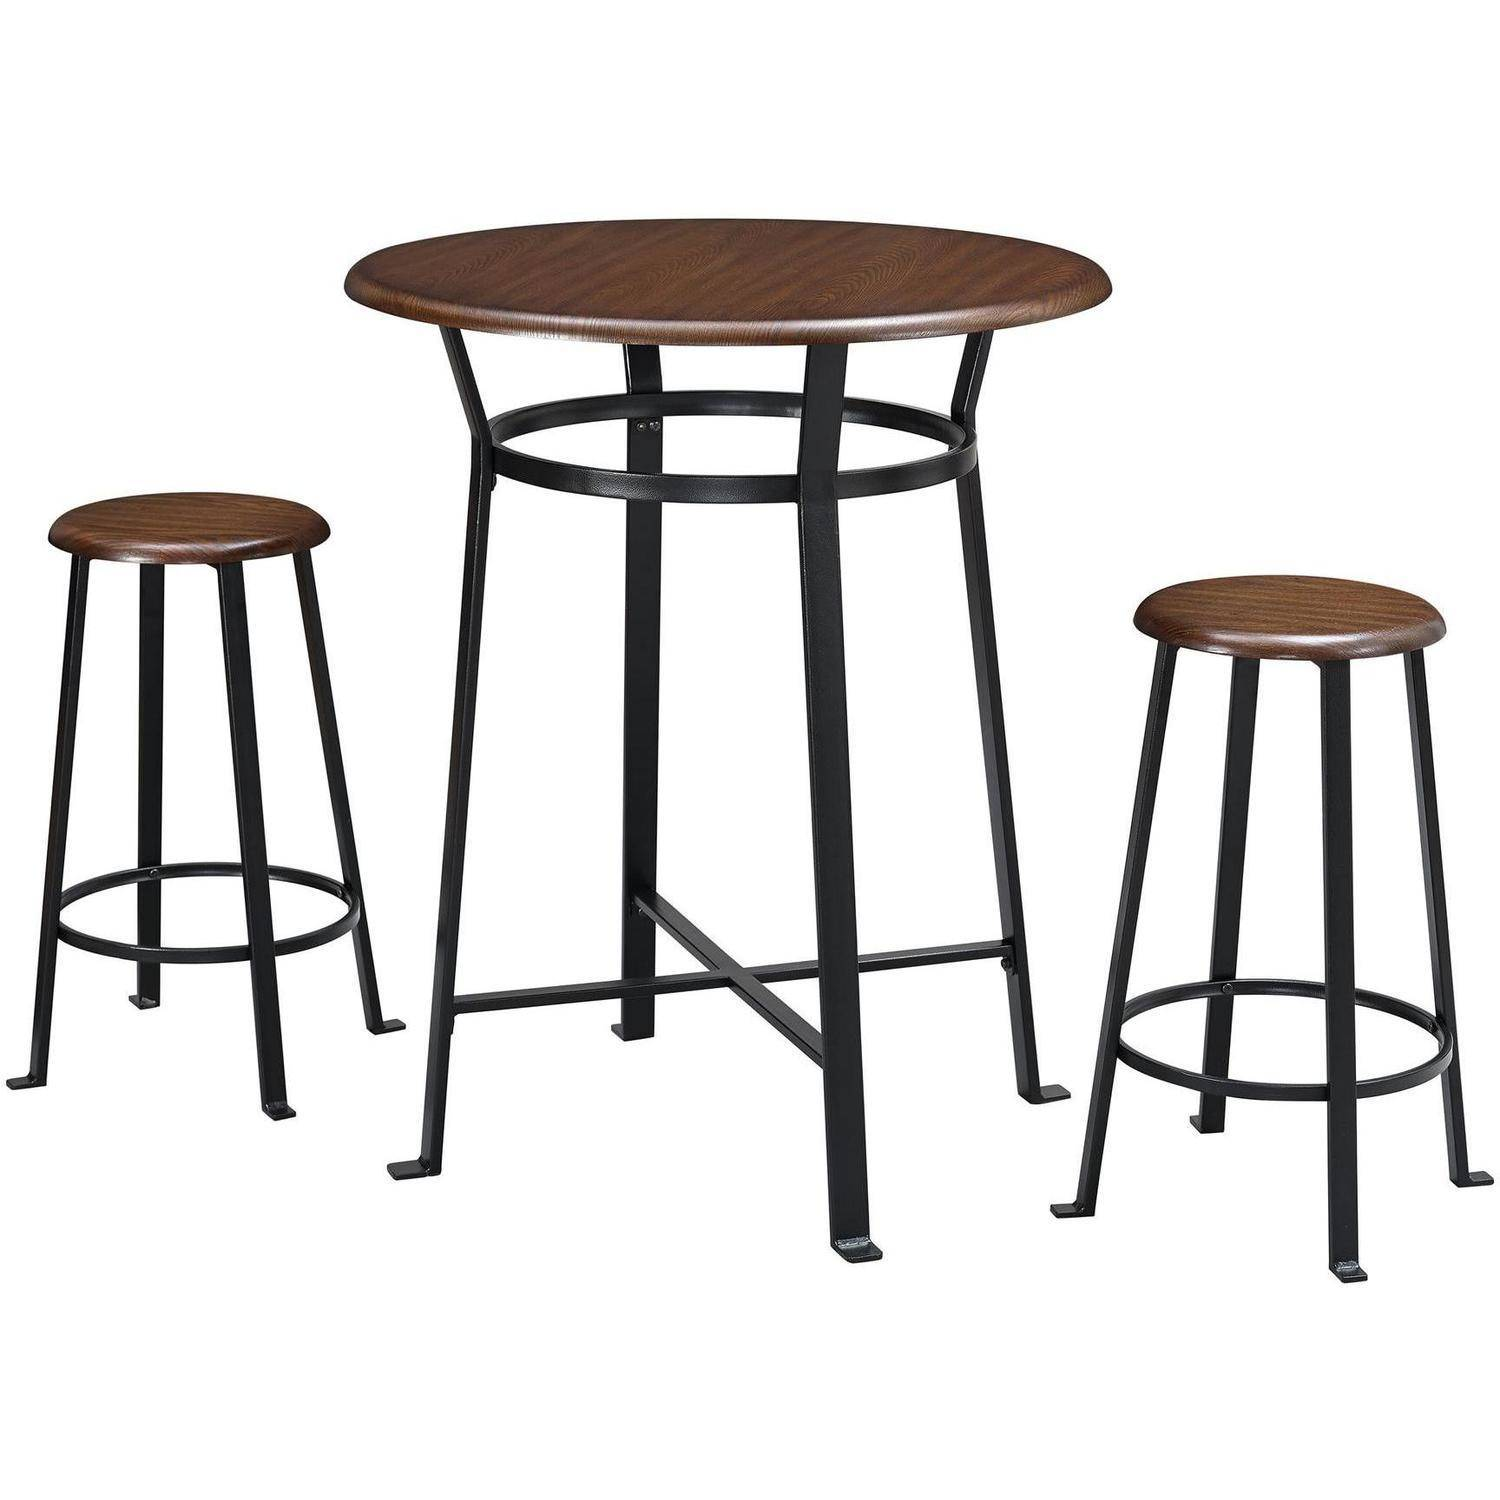 3 Piece Dining Set Bar Stools Pub Table Breakfast Chairs: Metal Pub Set 3 Piece Round Wood Top Table Stools Kitchen